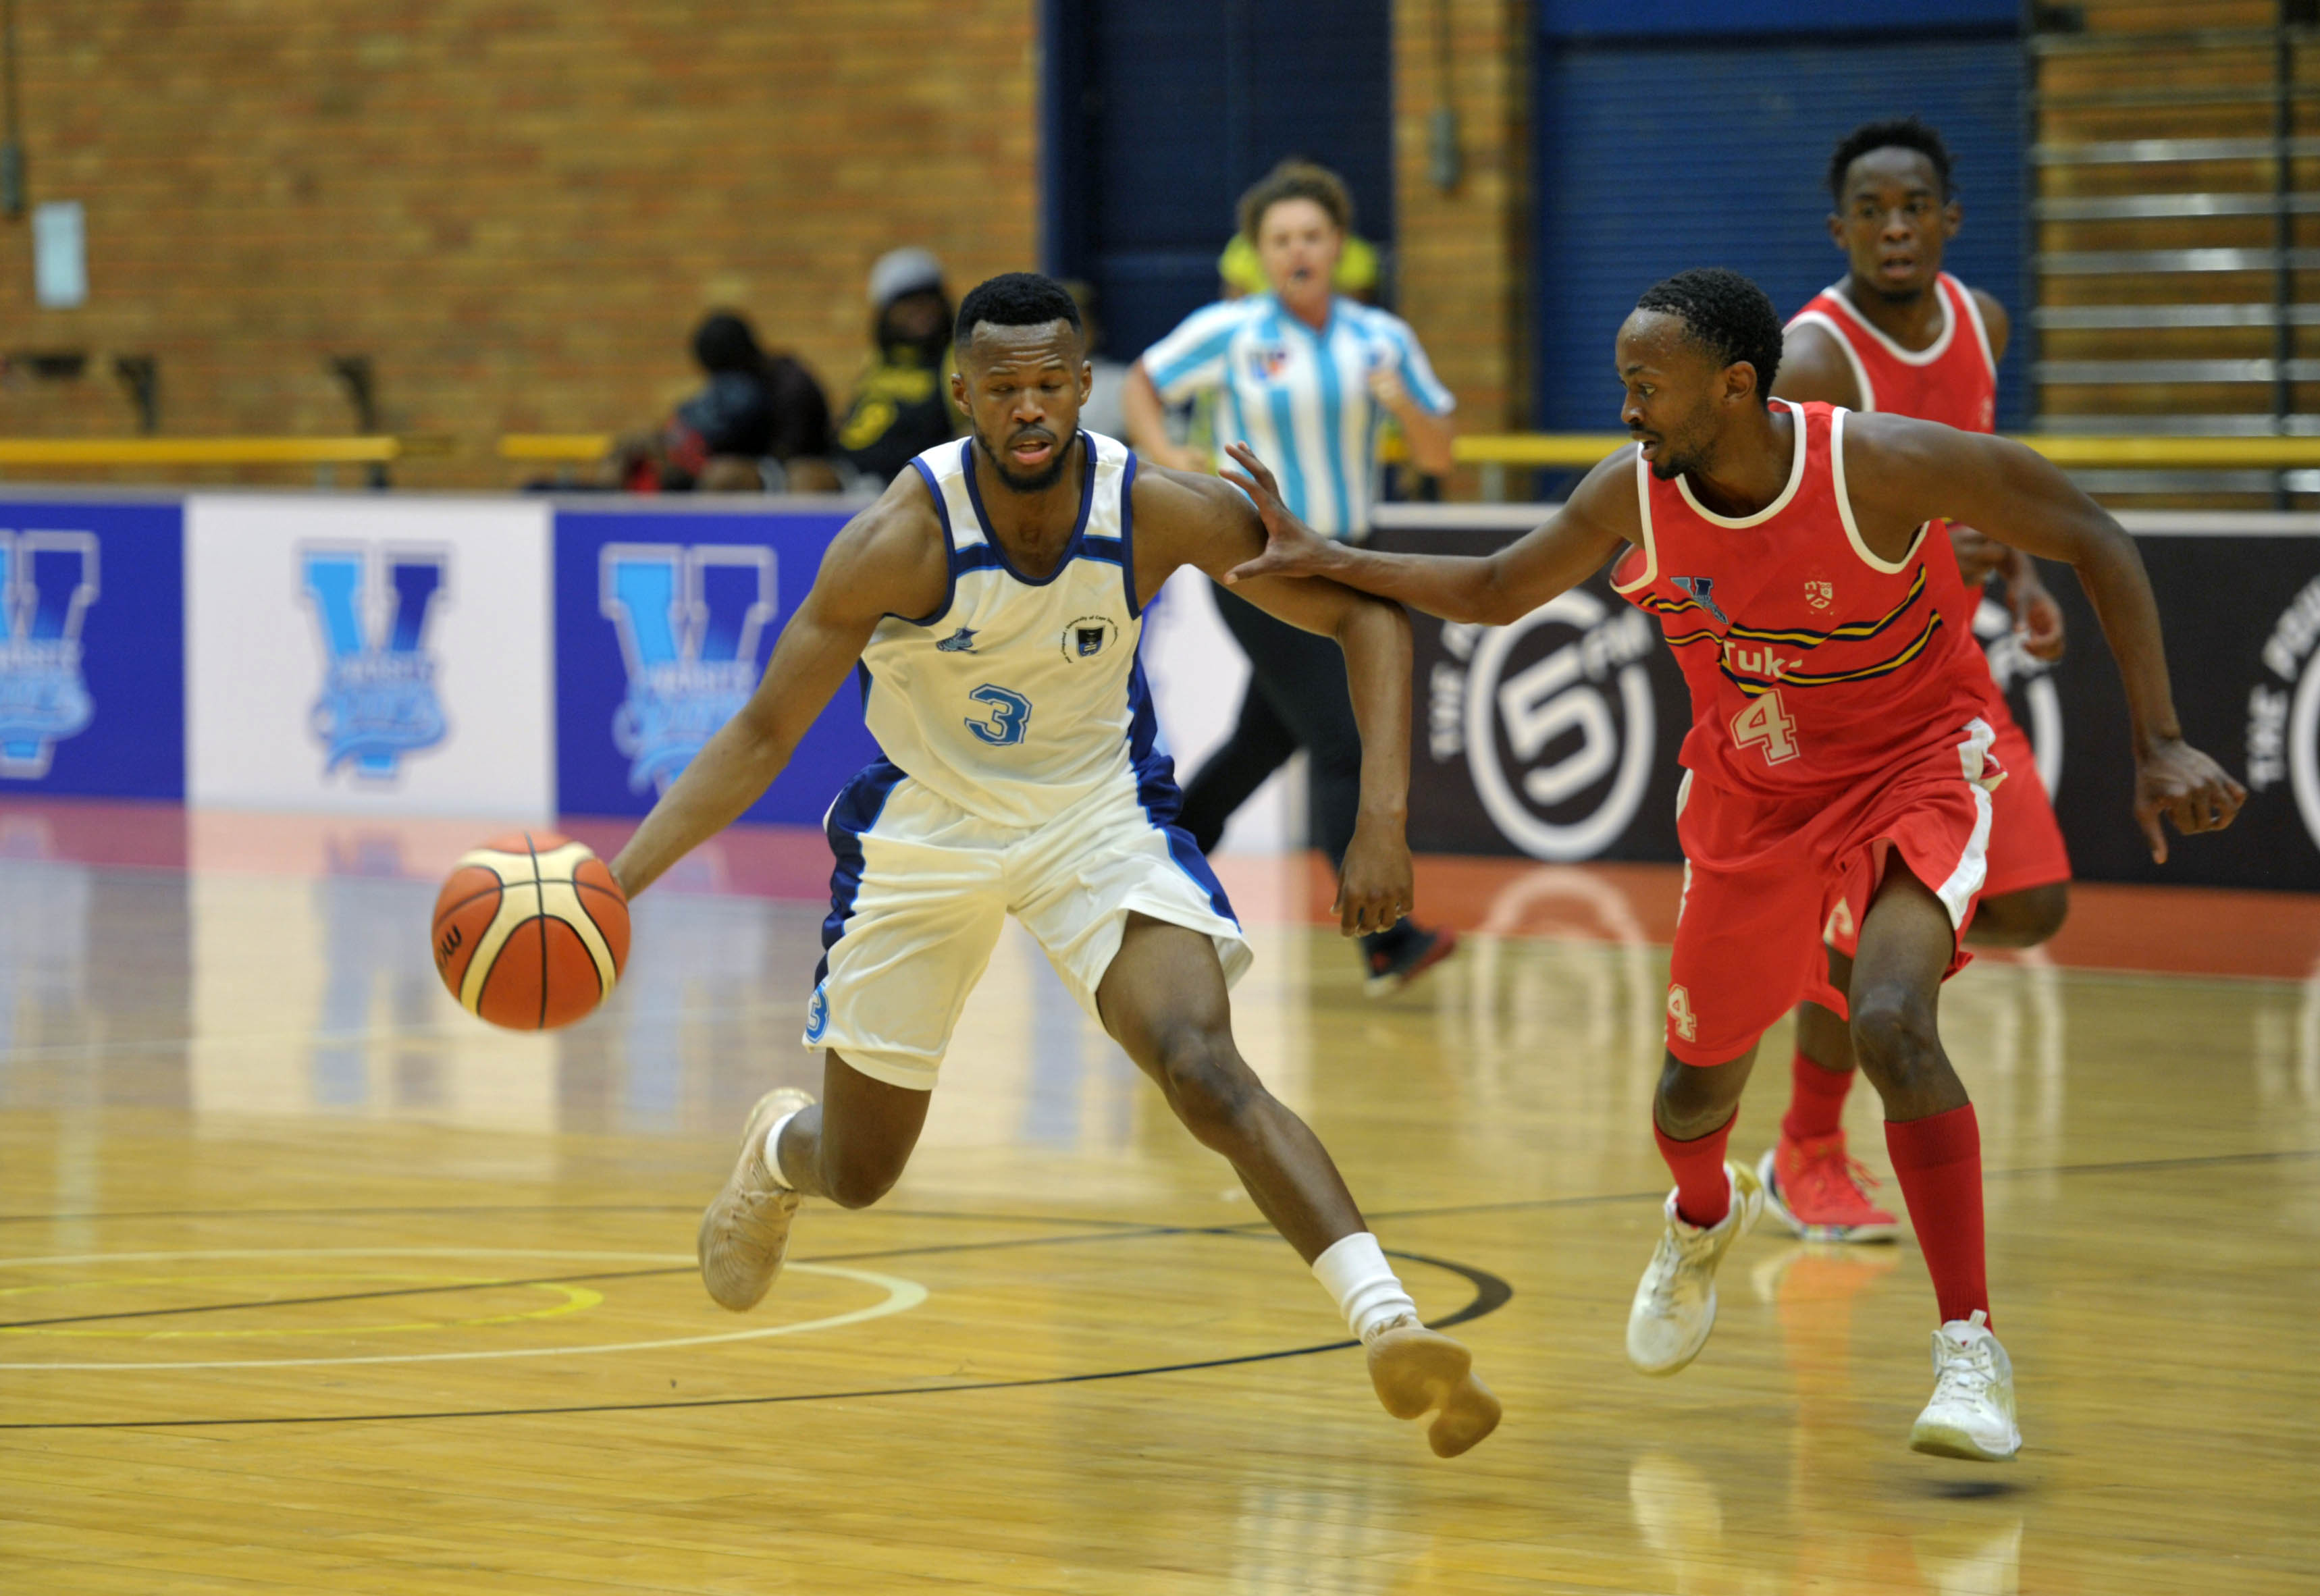 Siphumle Qanya (C) (3) from University of Cape Town runs around Thhidiso Matebesi (4) from Tukkies during the Varsity Sports Basketball match 11 between UCT vs UP-TUKS on October 06, 2018 at Wits Multi-Purpose Hall in Johannesburg, South Africa. #Varsitybasketball (Photo by Craig Nieuwenhuizen/SASPA)